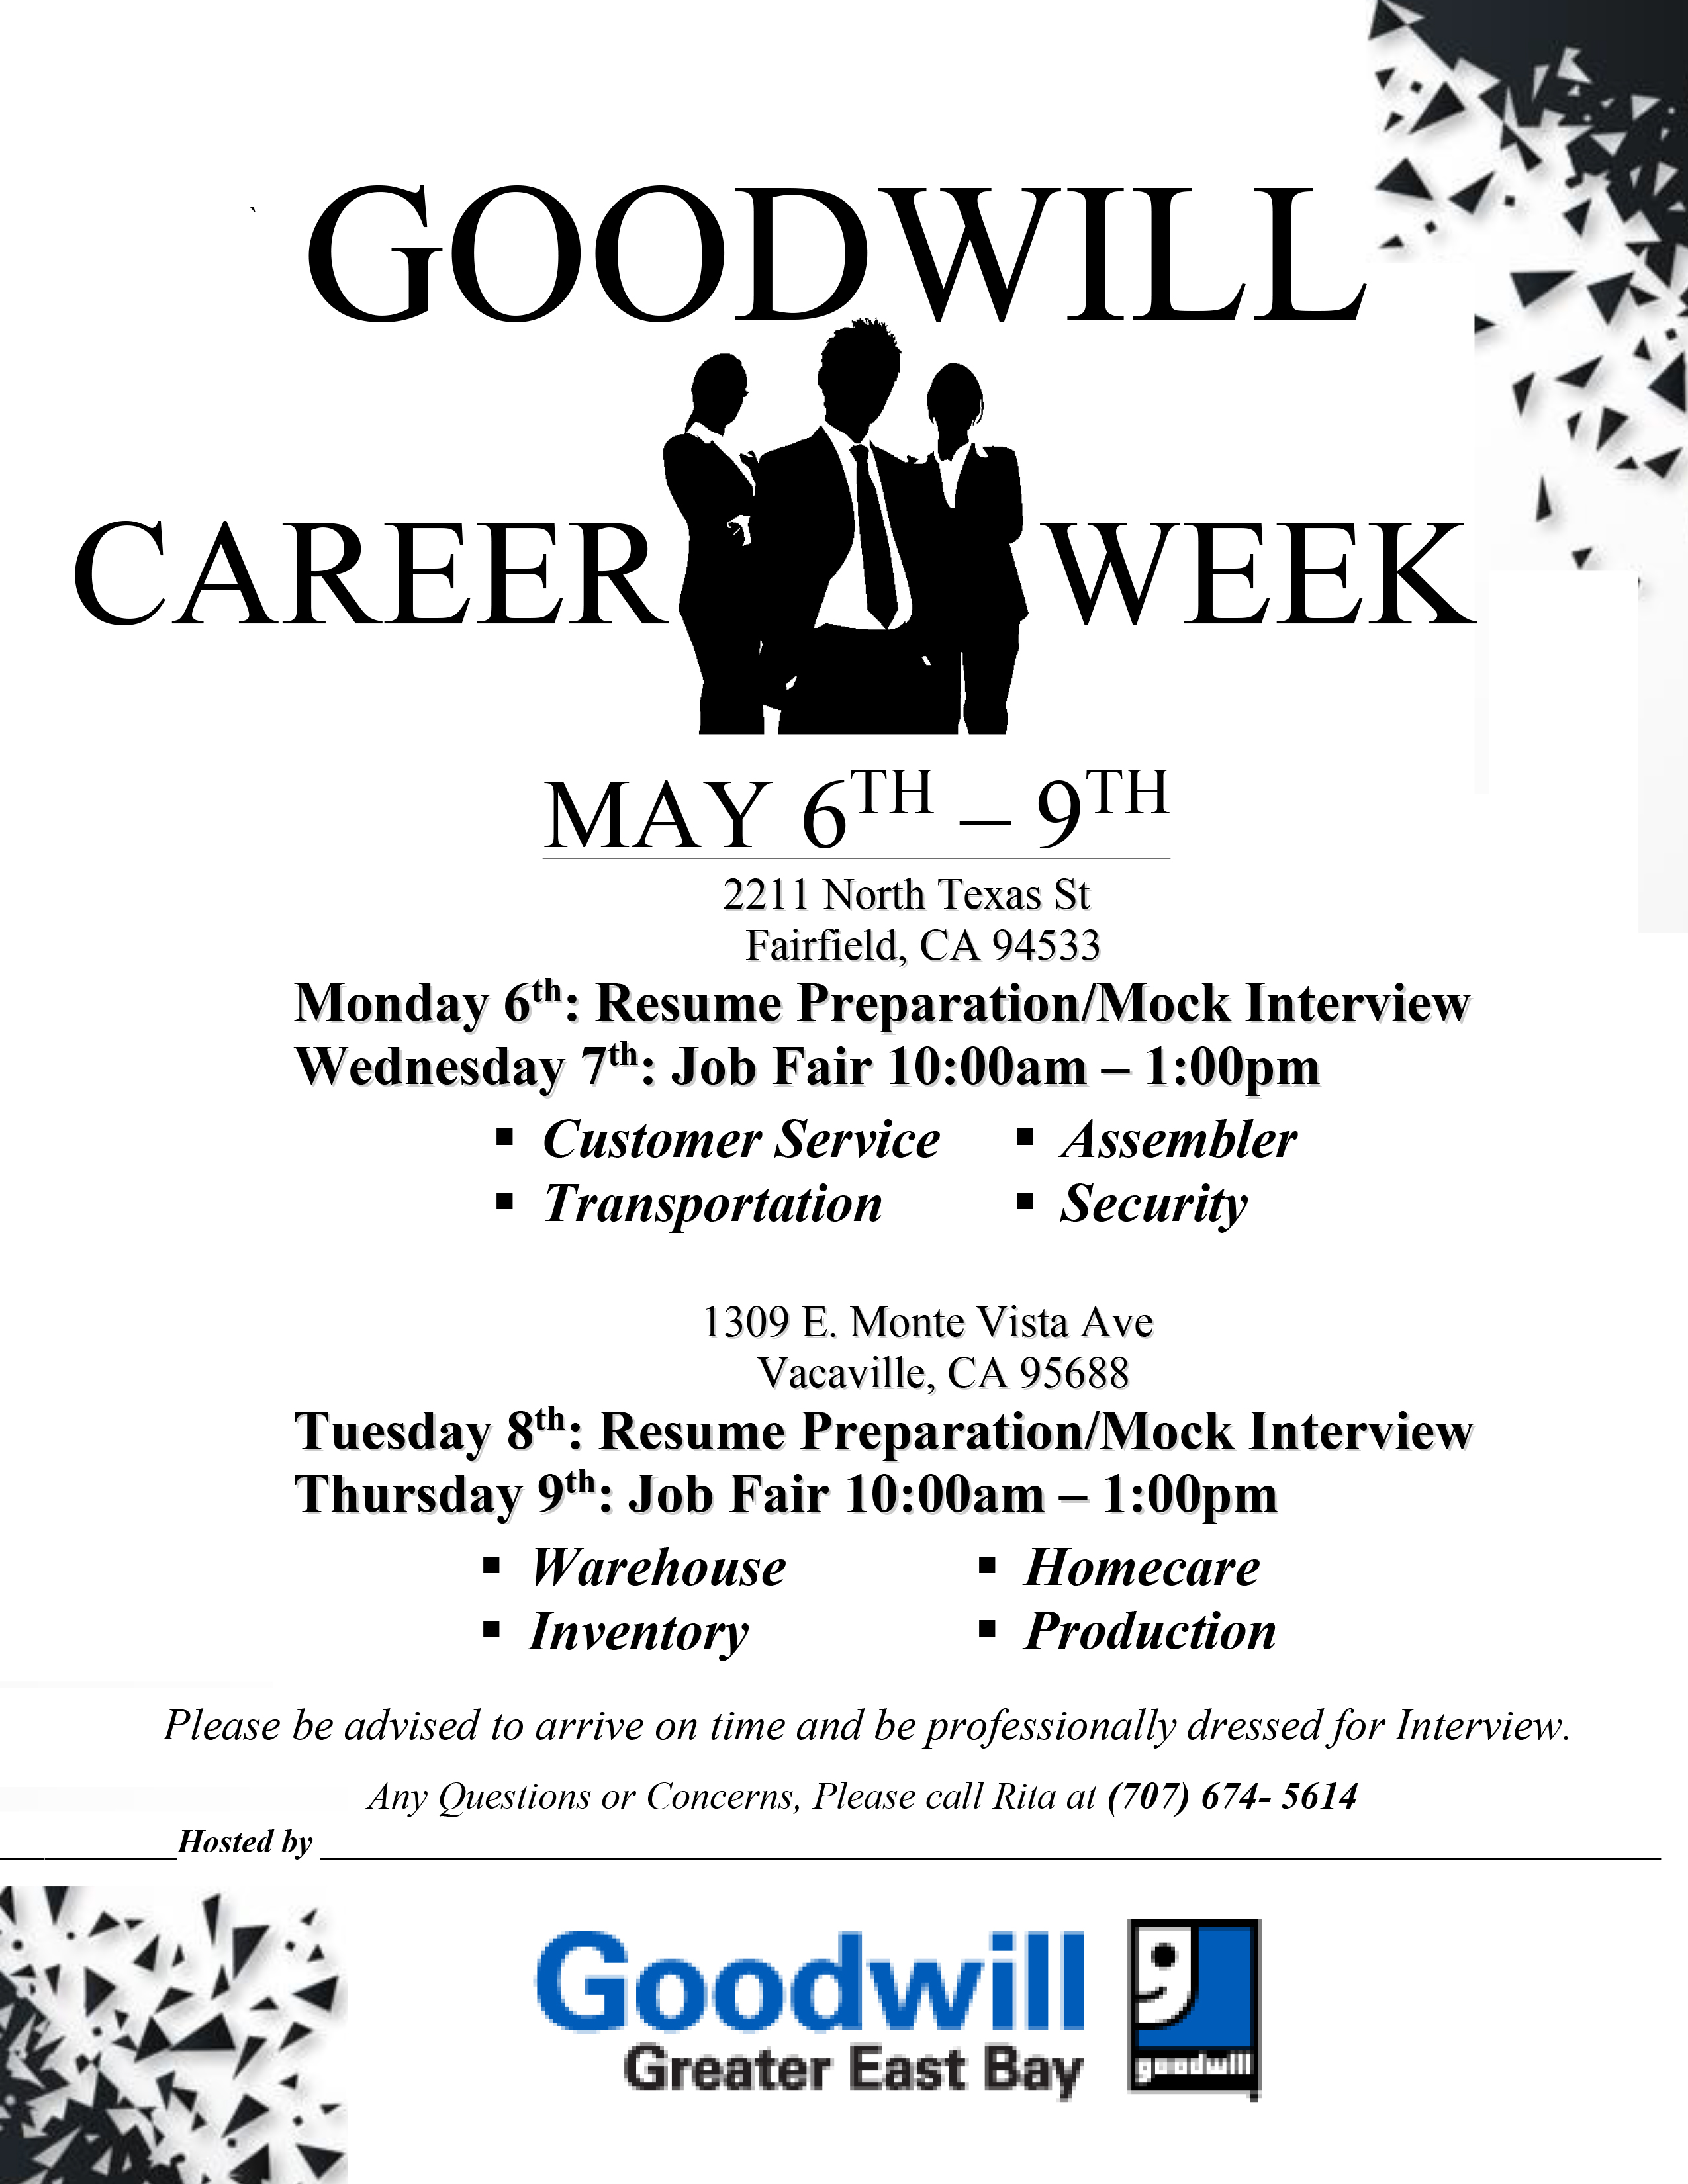 goodwill-career-week-2019